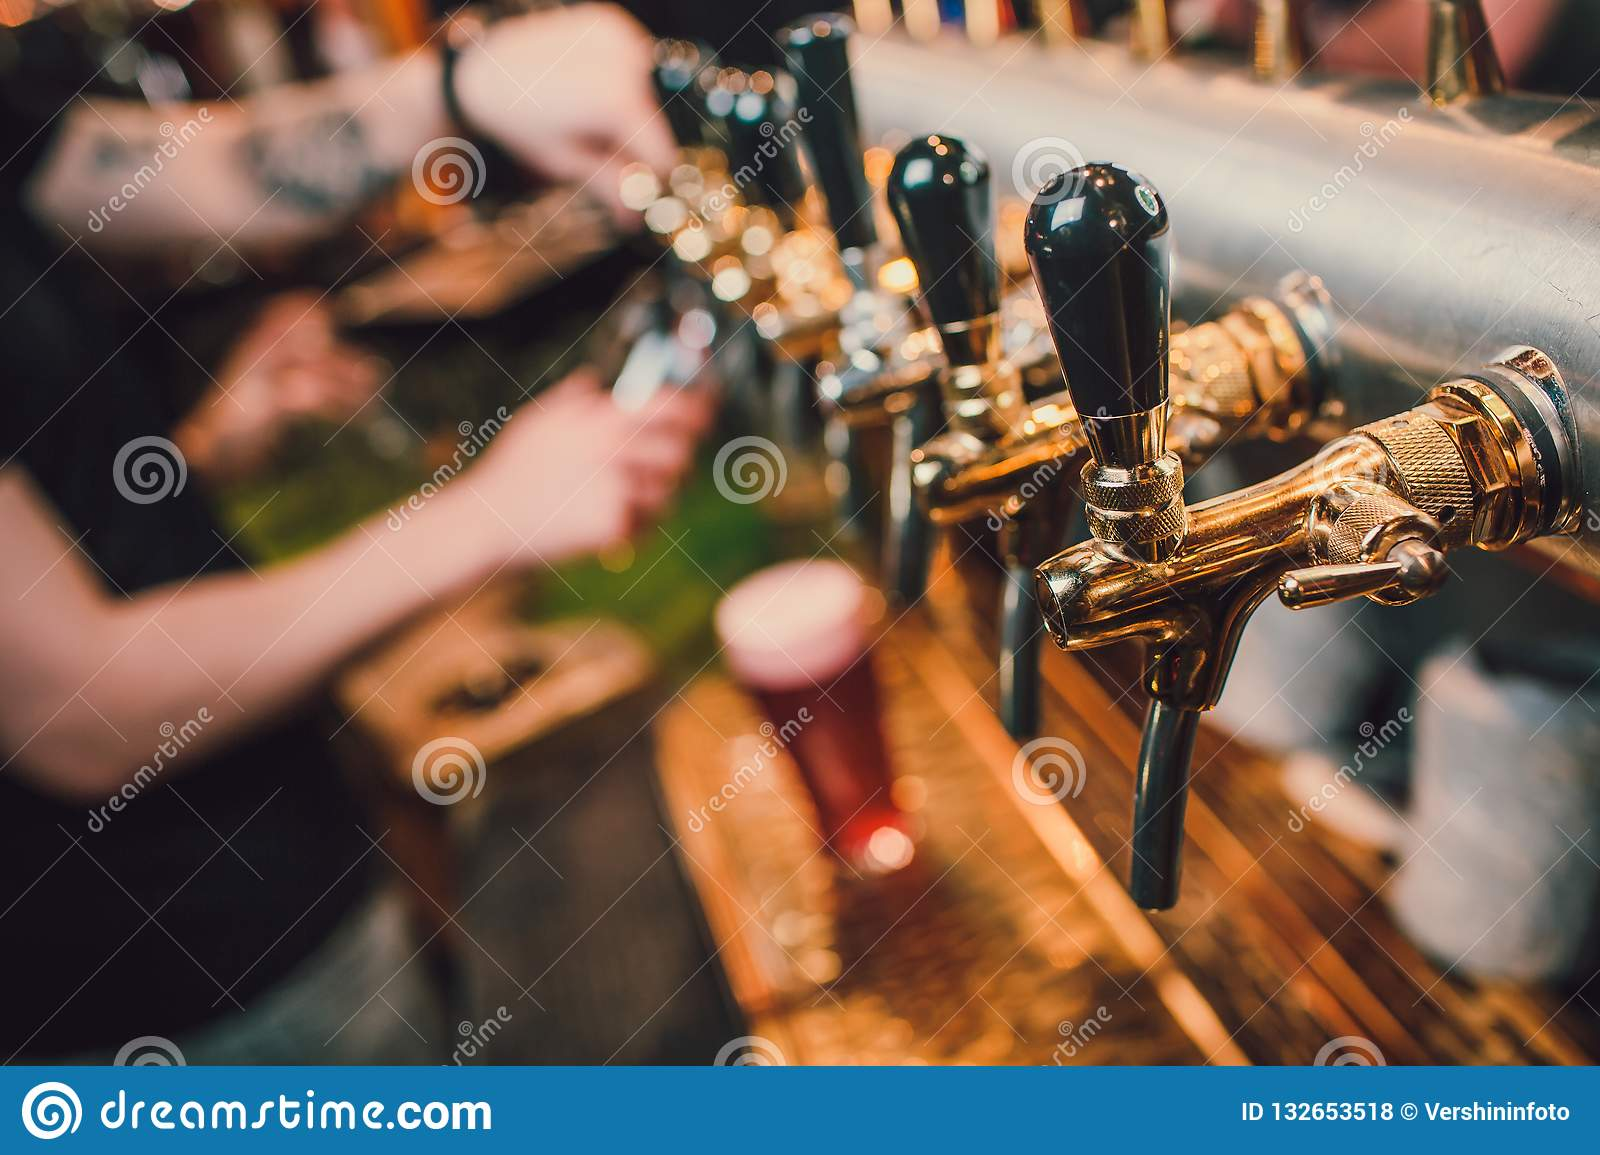 Barman Hands Pouring A Lager Beer In A Glass. Stock Photo ...